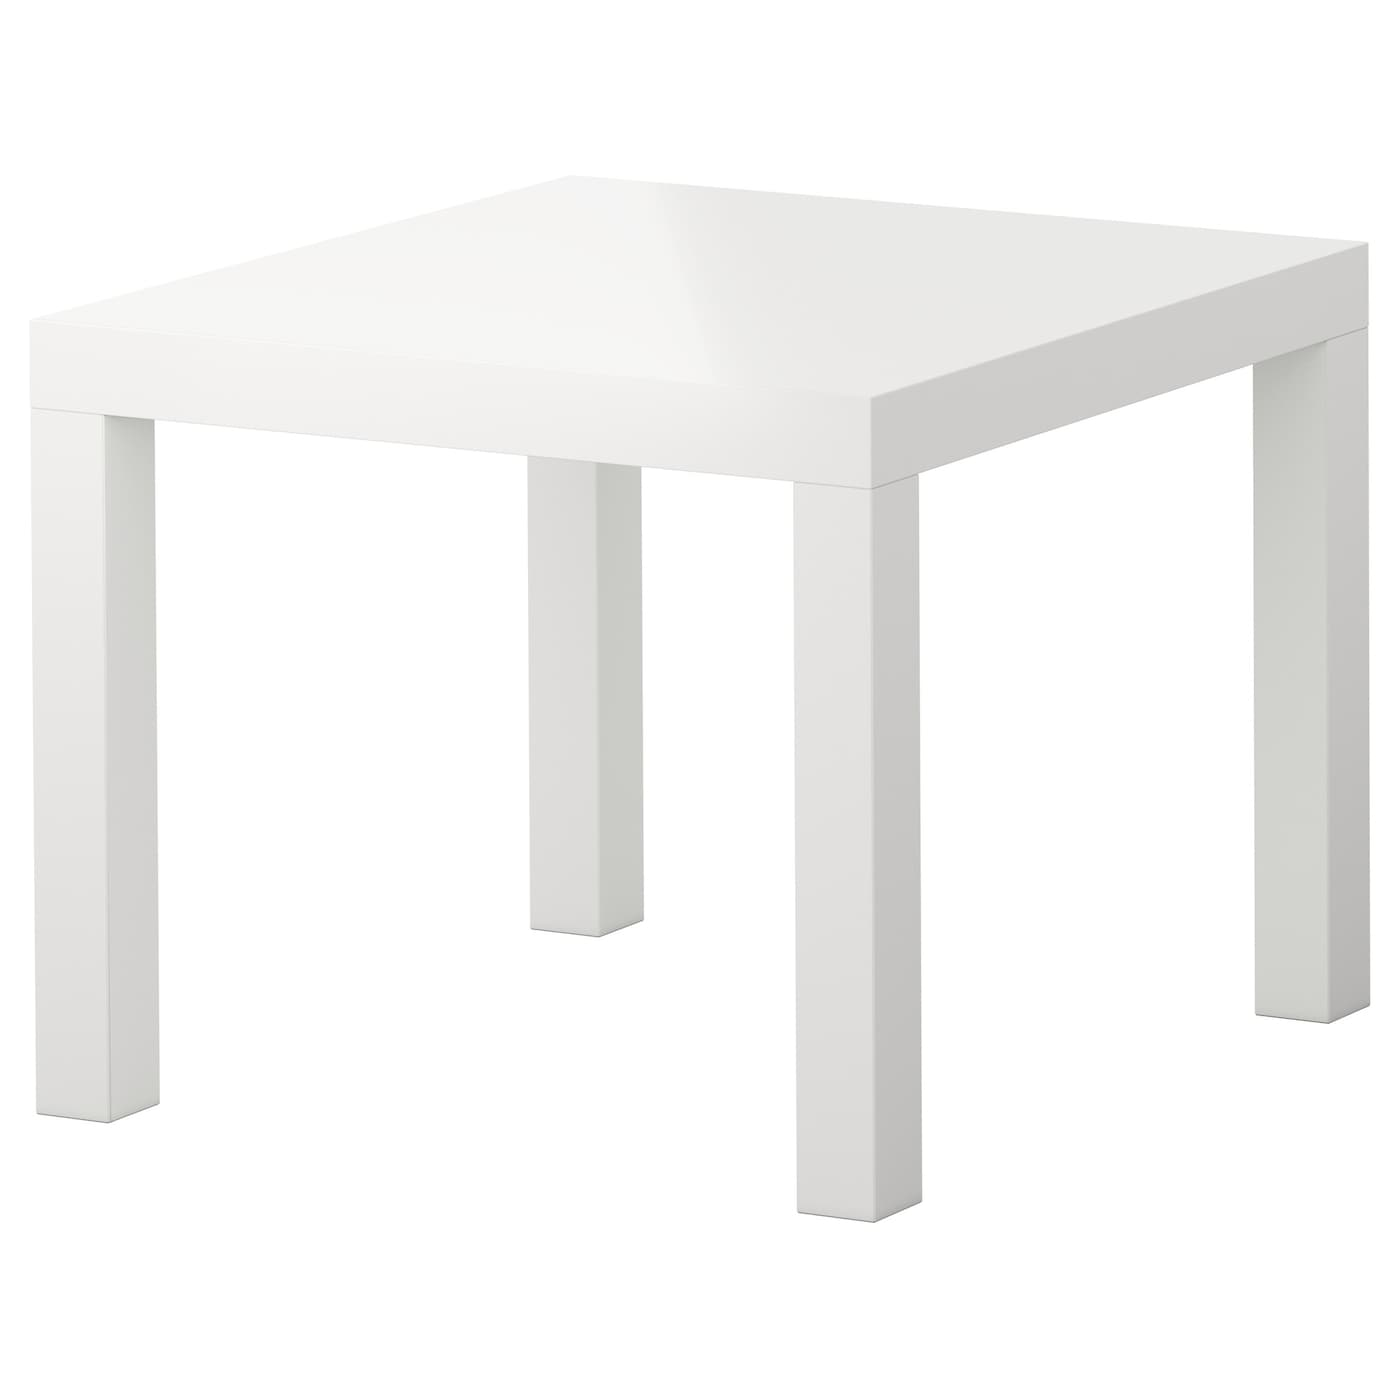 lack side table high gloss white 55x55 cm ikea